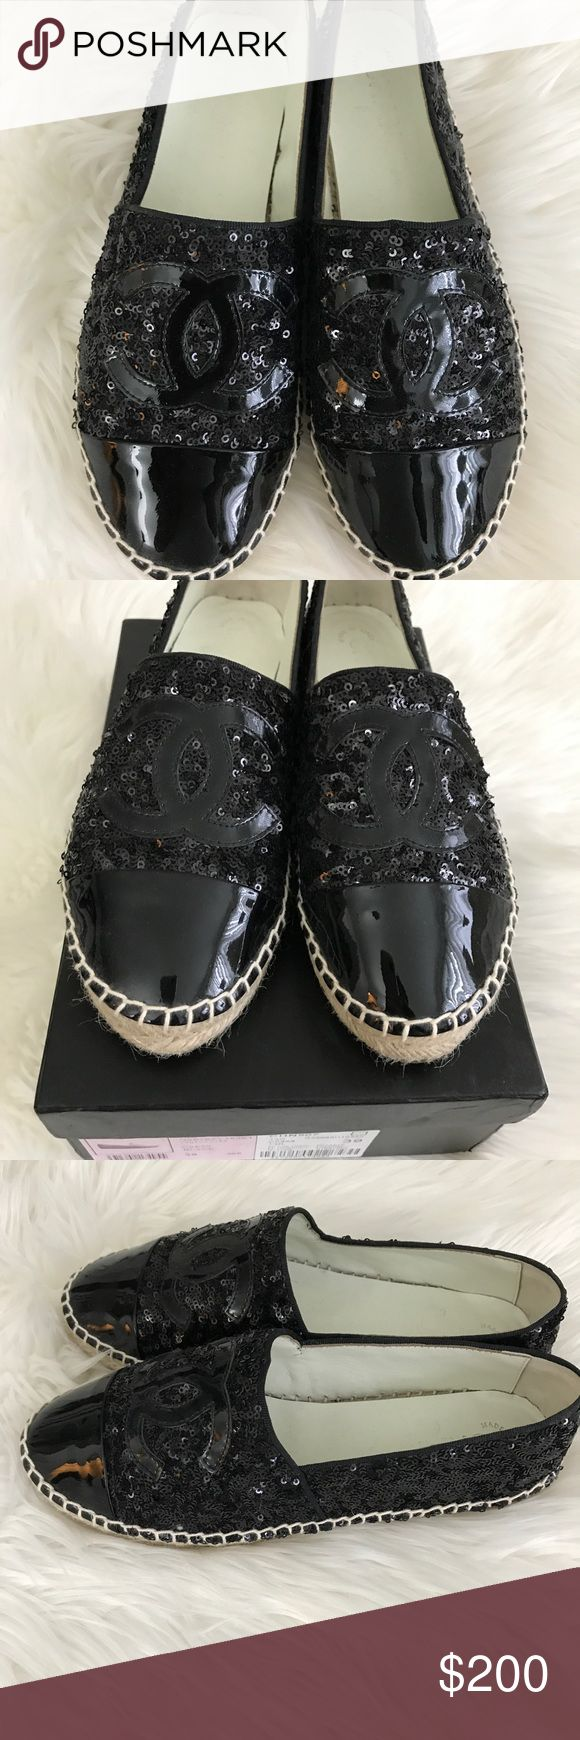 Chanel shoes Only used once this size is 8 but fits size 7.5 inspired this comes with a box, make me an offer need to sale fast coz im cleaning my closet thanks happy shopping CHANEL Shoes Espadrilles